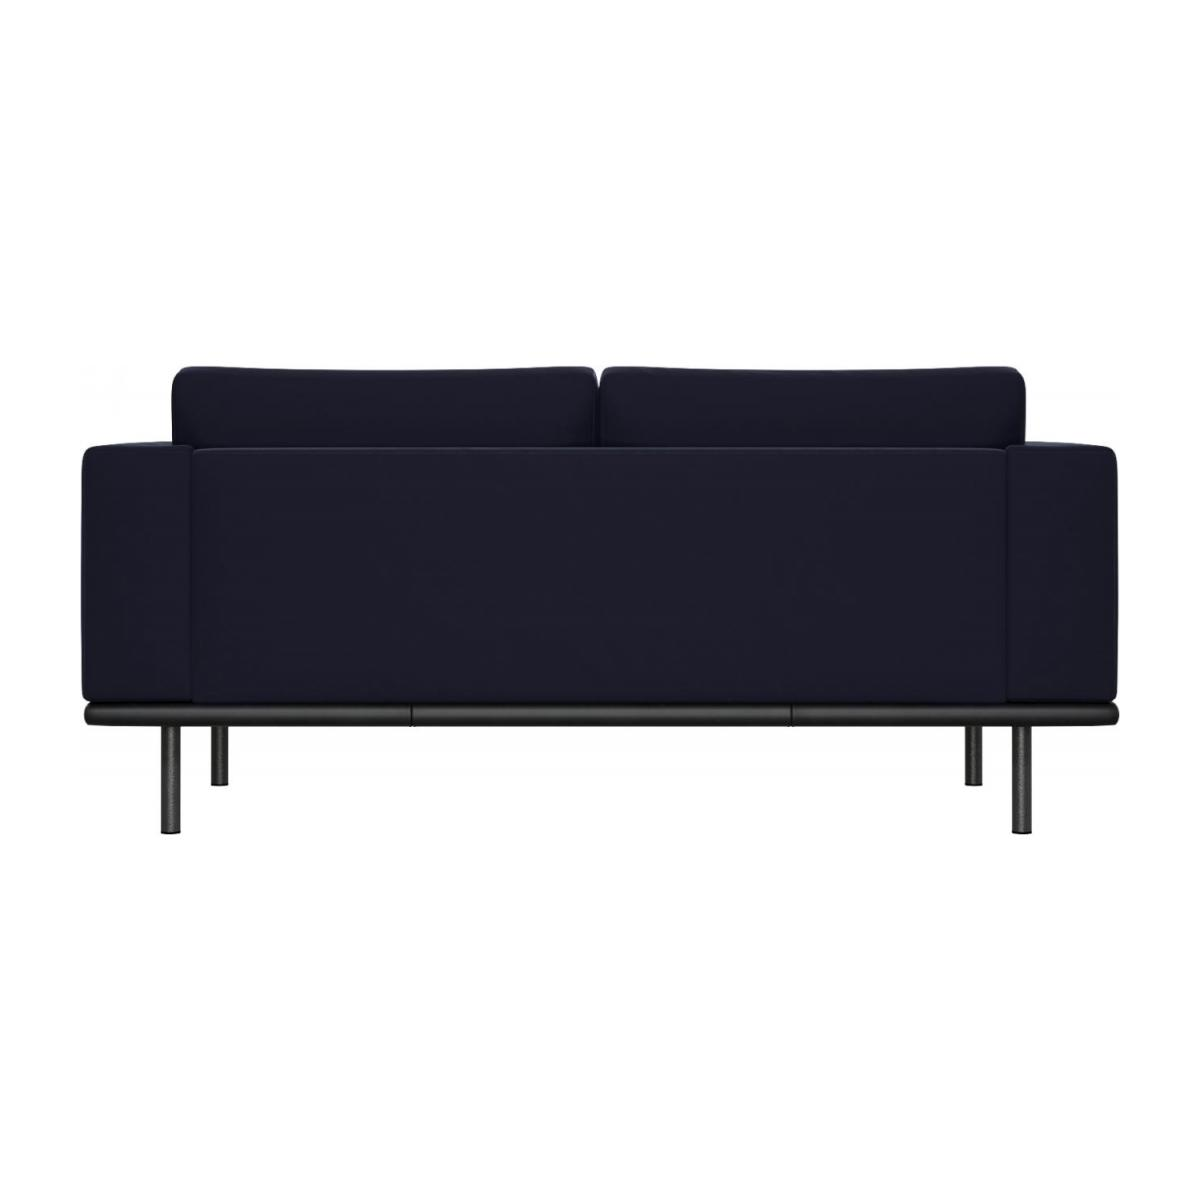 2 seater sofa in Super Velvet fabric, dark blue with base in black leather n°3